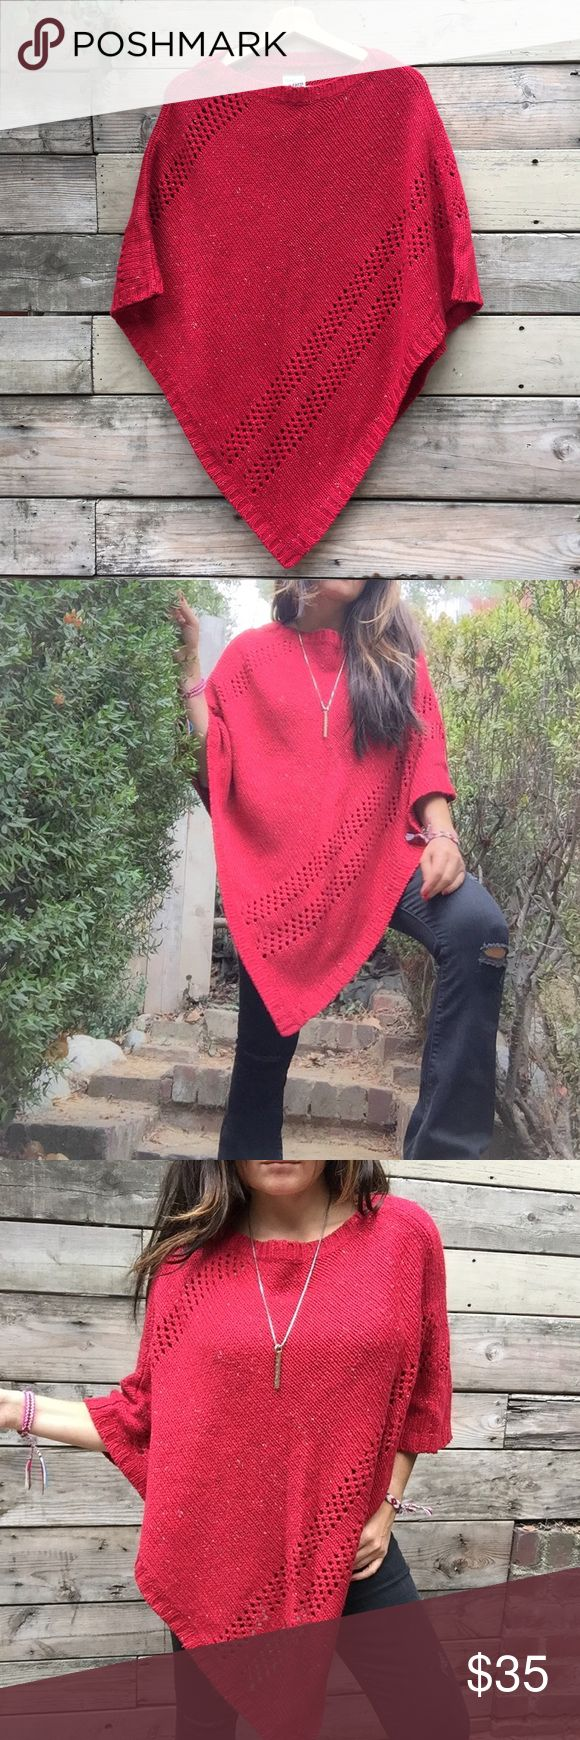 Knitted red poncho Super cute! Perfect color for the season! Makes me feel a bit like little red riding hood...ha! Size Small/Medium. Great condition. Speckled red yarn. Fabric Contents 55%Ramie 41% Acrylic 4%other fibers. Hand wash Bass Sweaters Shrugs & Ponchos